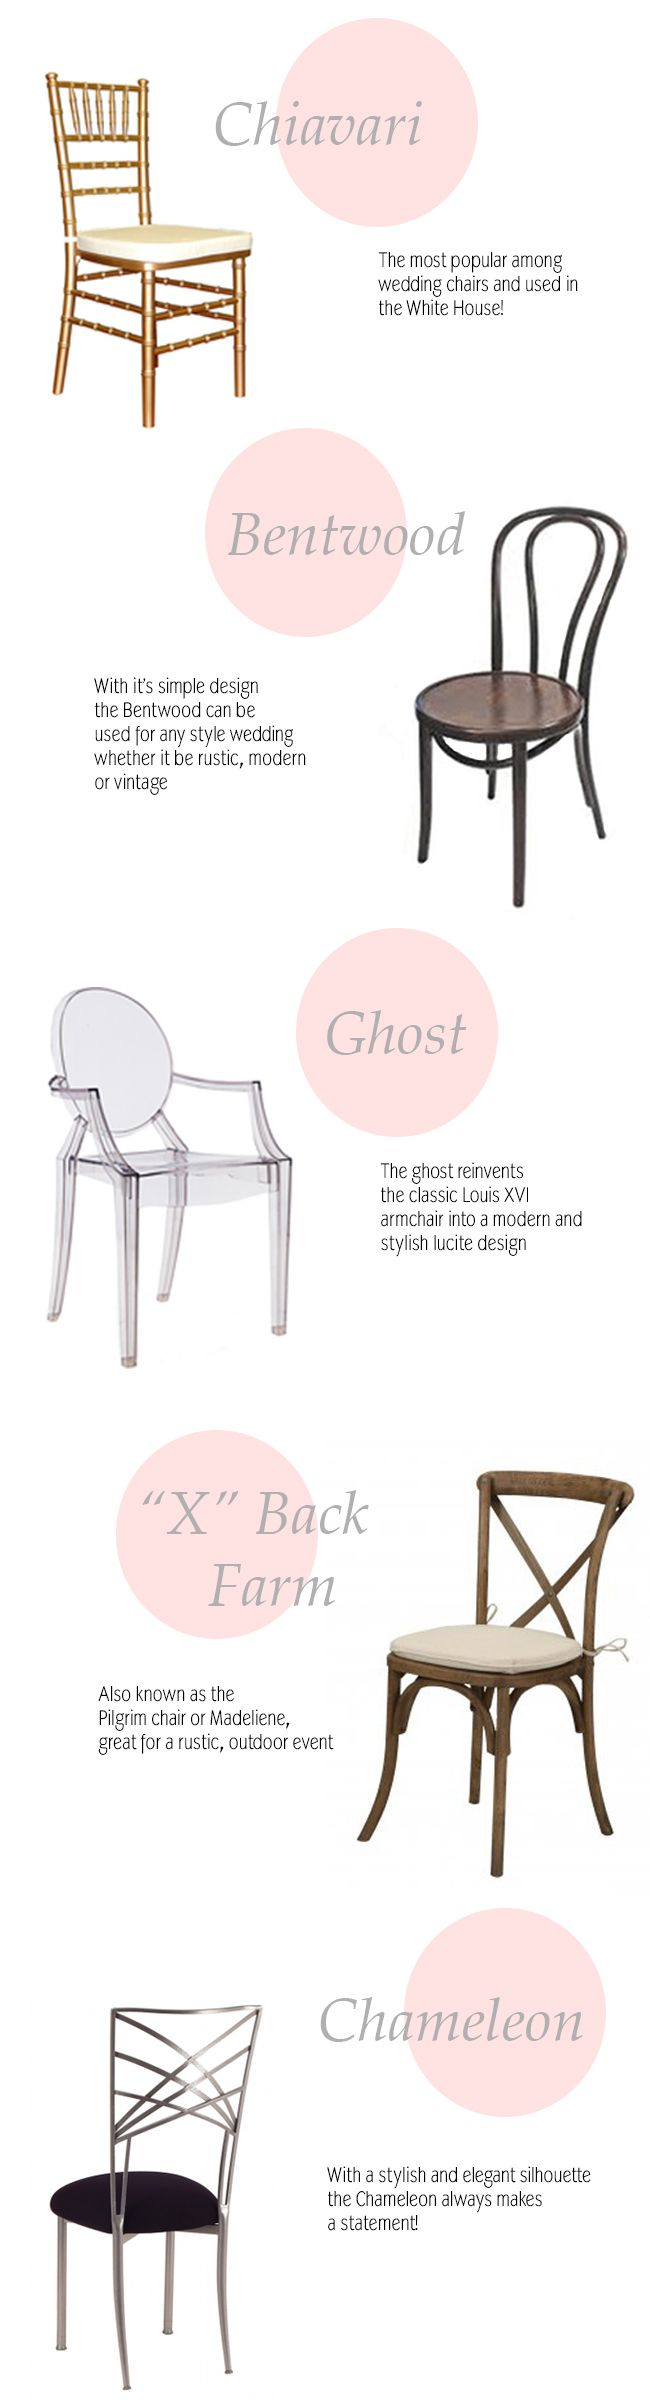 Top Five Wedding Chairs Via Coastal Bride Weddingchairs